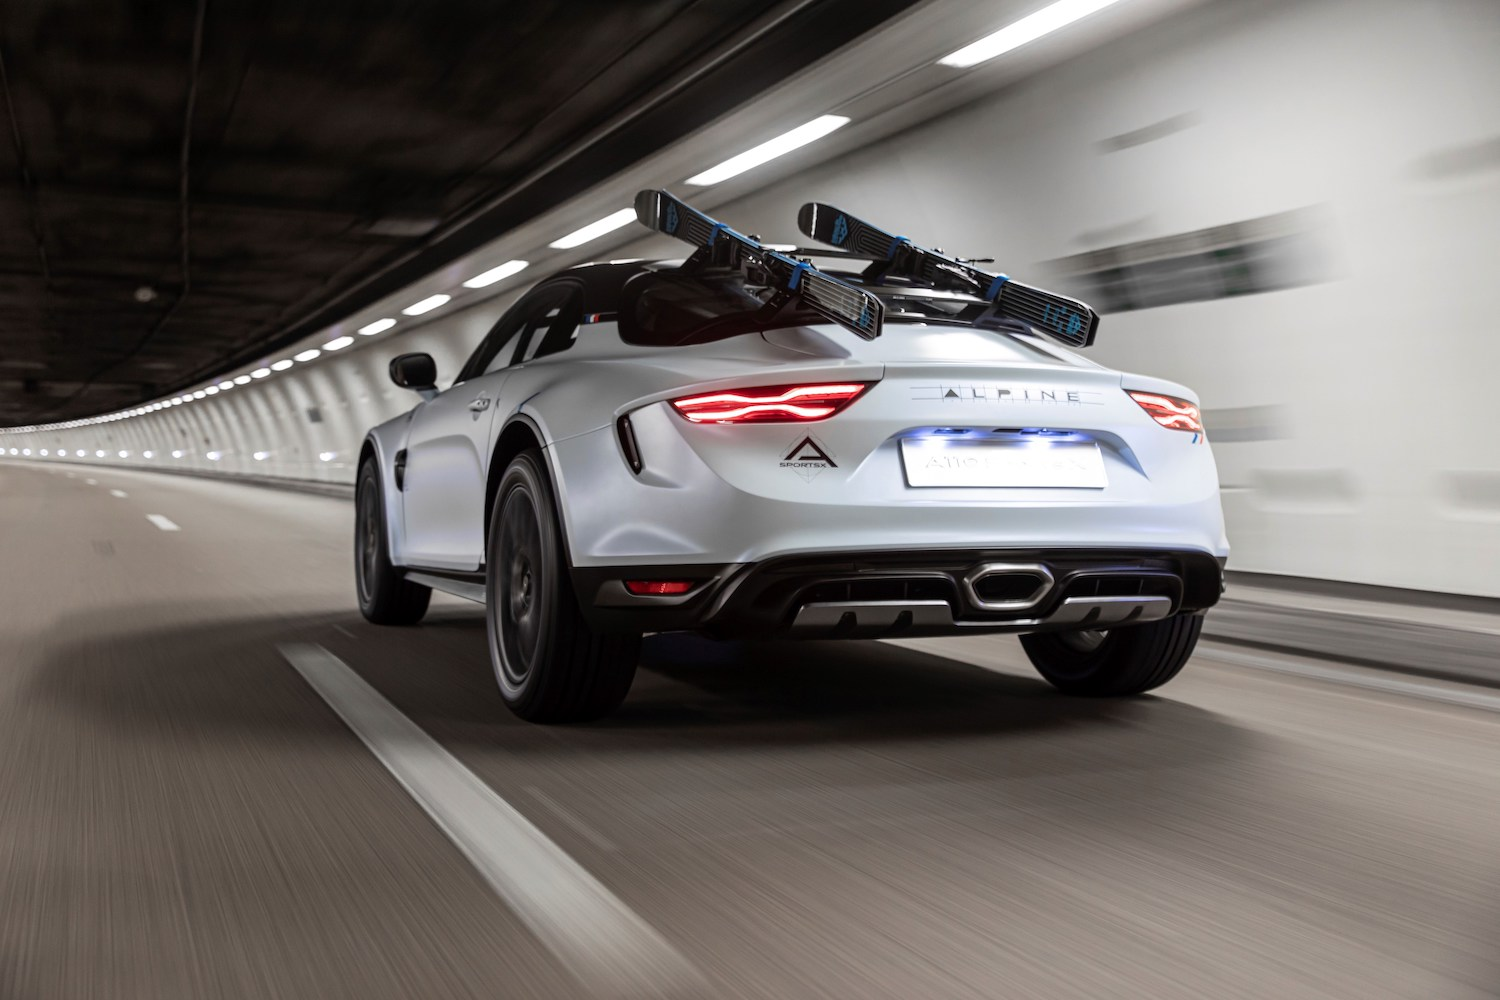 Alpine A110 SportsX rear three-quarter